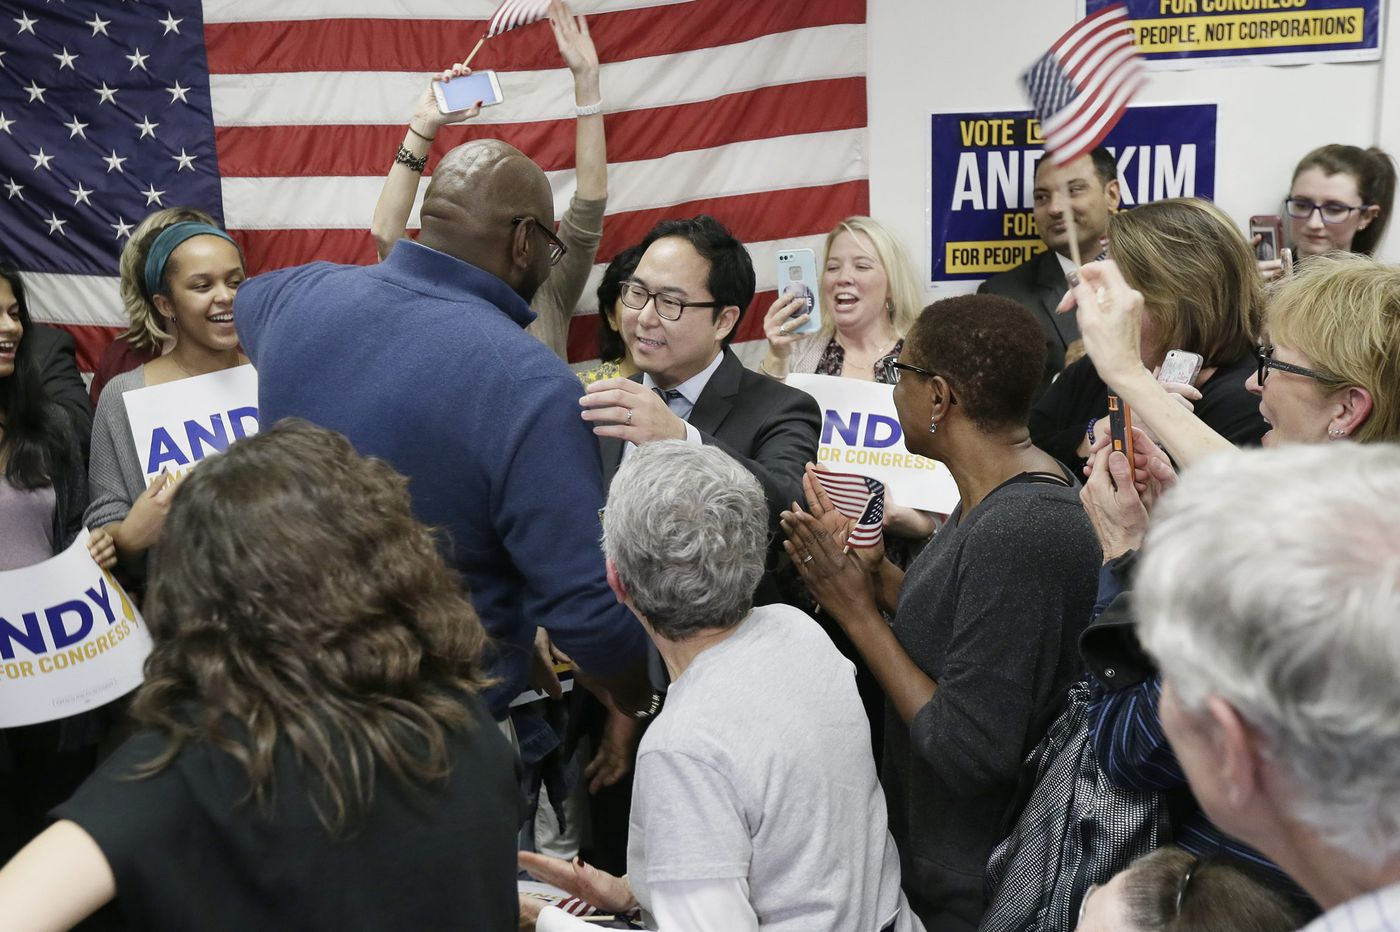 Andy Kim leads Rep. Tom MacArthur by 4,000 votes as counting will continue through the weekend